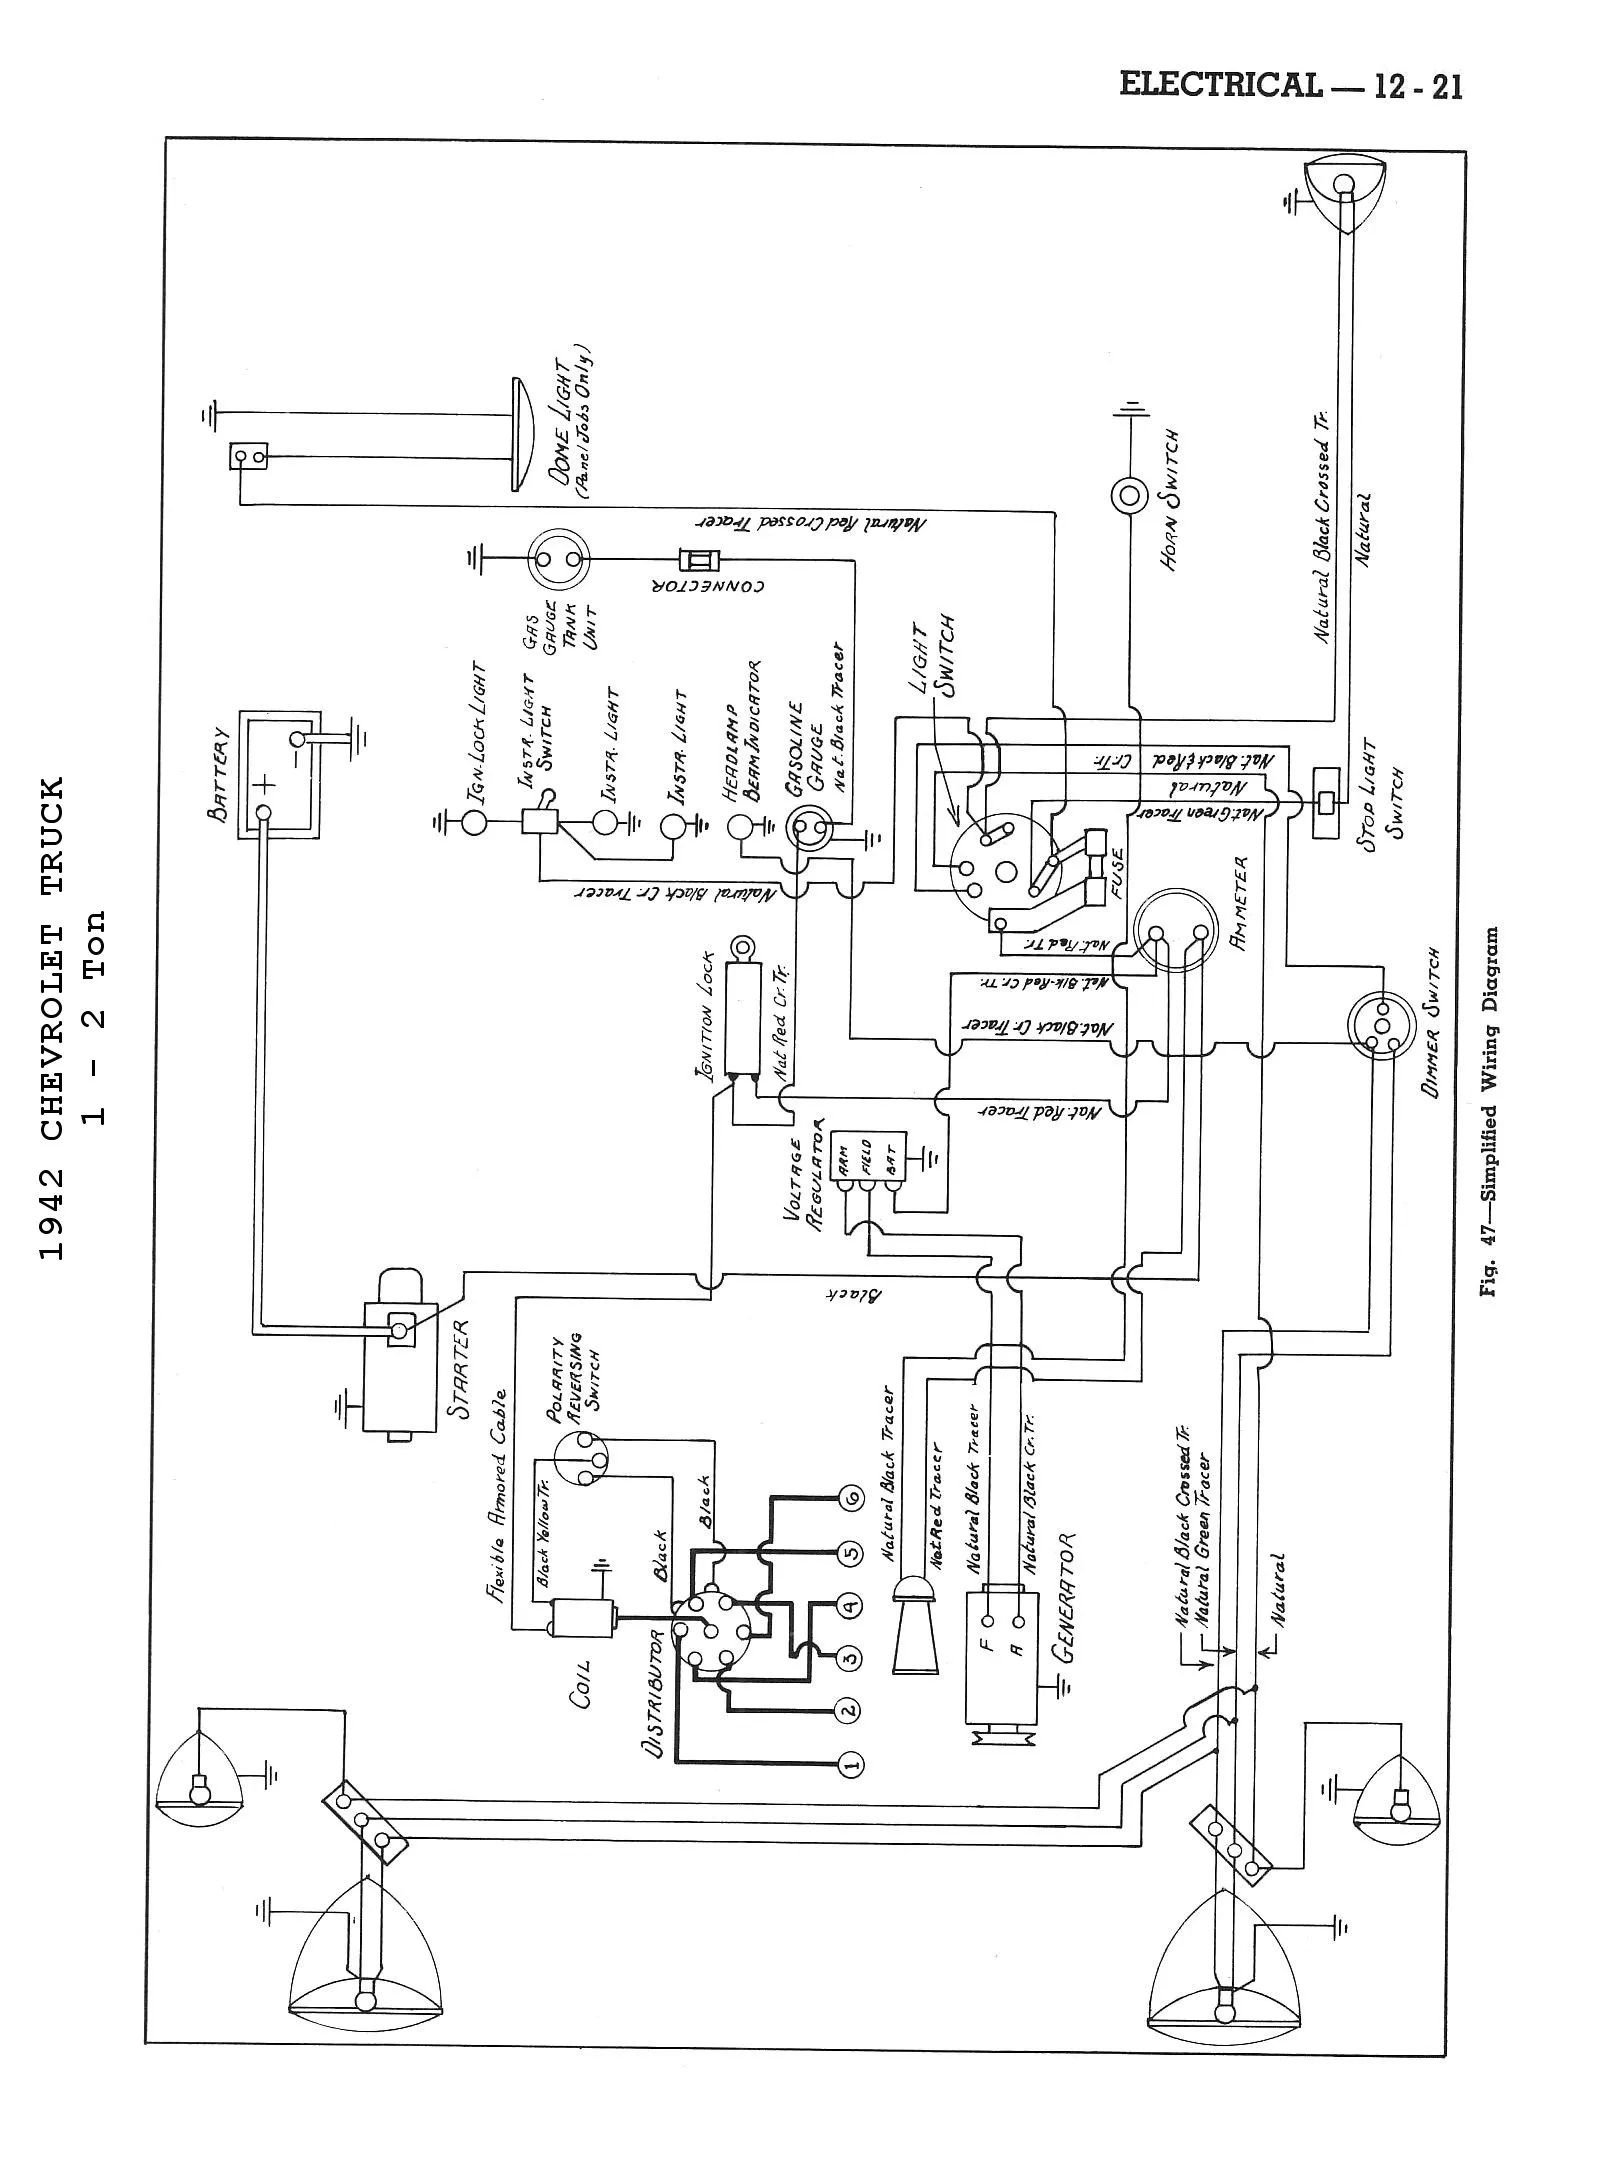 medium resolution of 1958 chevrolet steering column wiring diagram